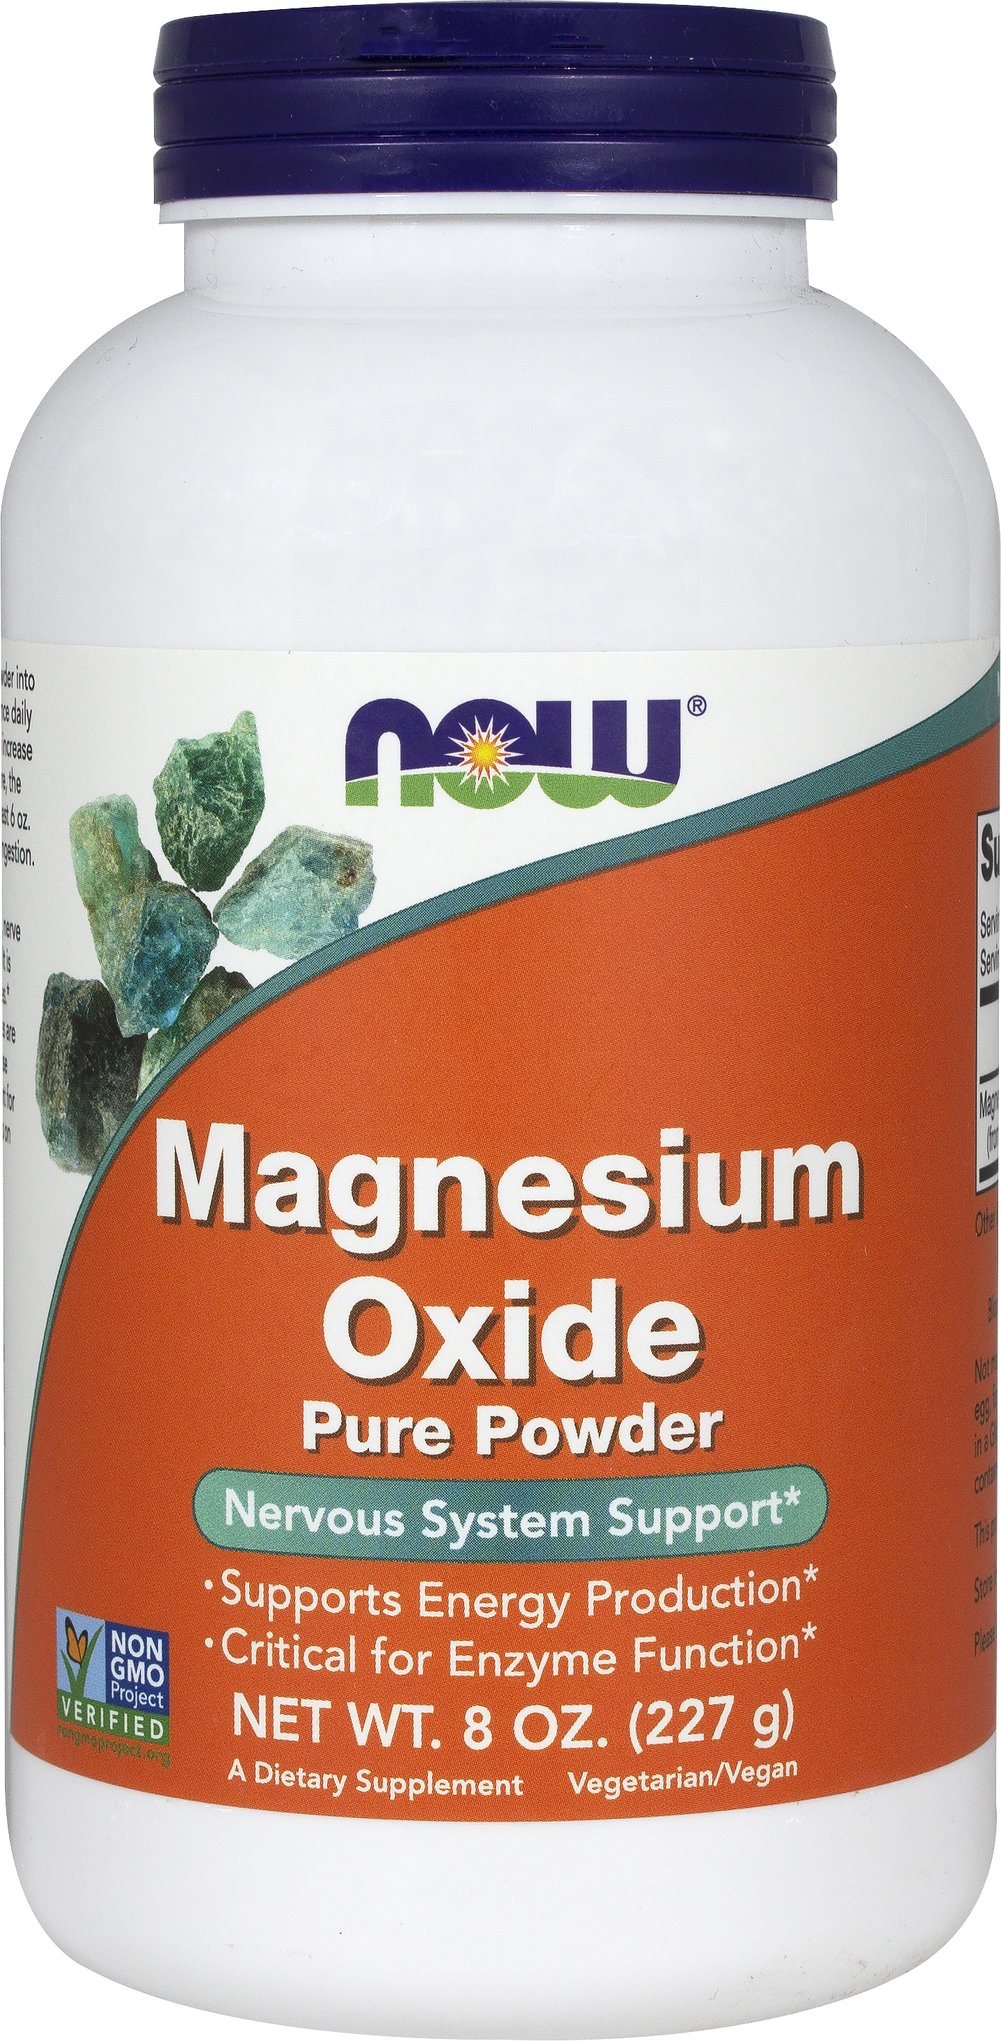 Magnesium Oxide Powder <p><strong>From the Manufacturer's Label:</strong></p><p>Supports Energy Production**</p><p>Critical for Enzyme Function**</p><p>Magnesium Oxide is derived from ancient oceanic deposits and is a rich source of elemental magnesium (58% average).  Magnesium is an essential mineral that plays a key role in the activation of amino acids for protein biosynthesis and is highly concentrated in intracellular fluid and bone.